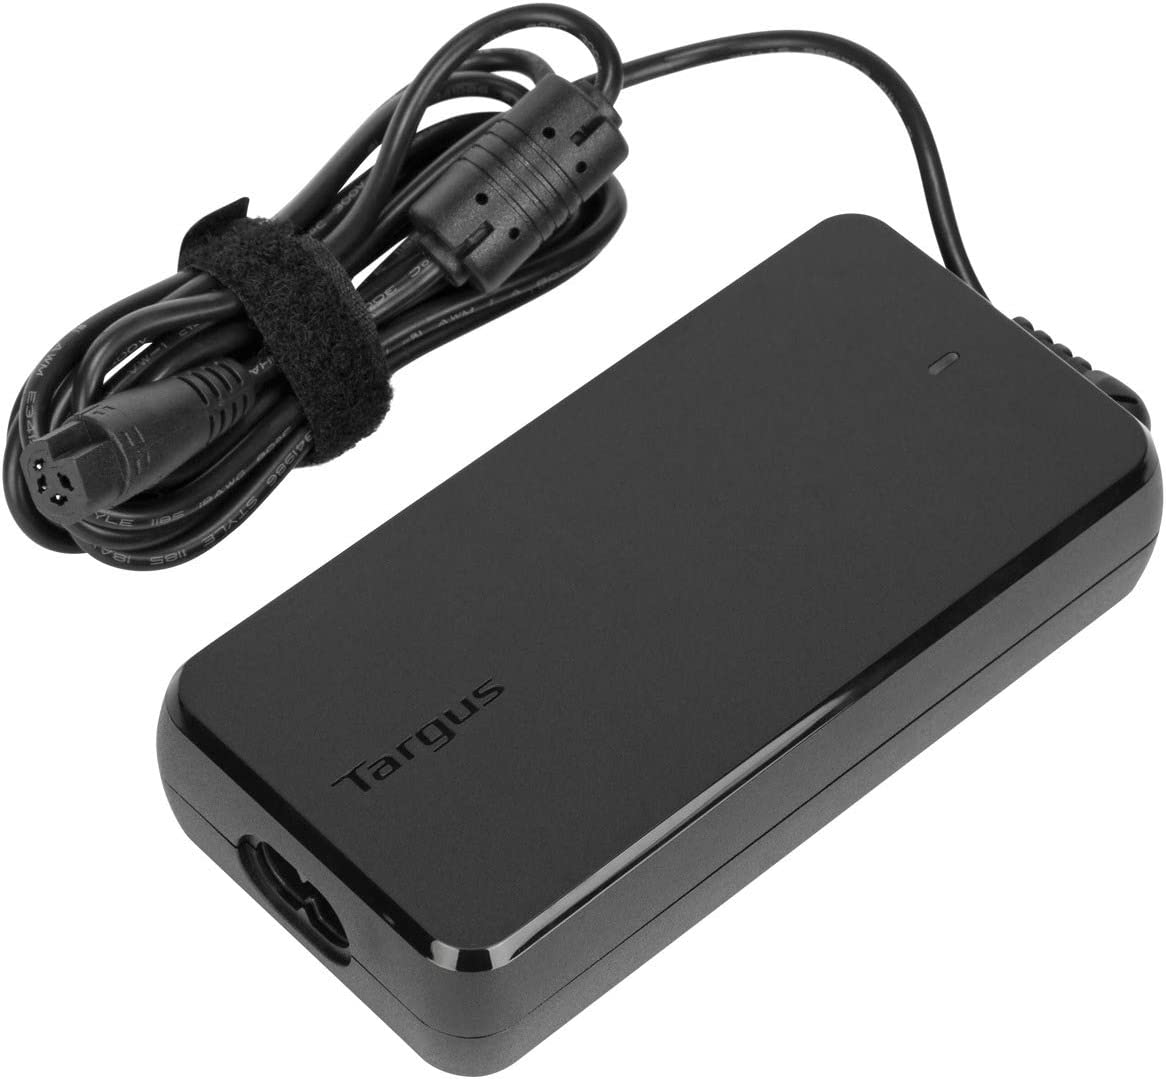 Targus 90 Watt AC Laptop Charger with USB Fast Charging Port